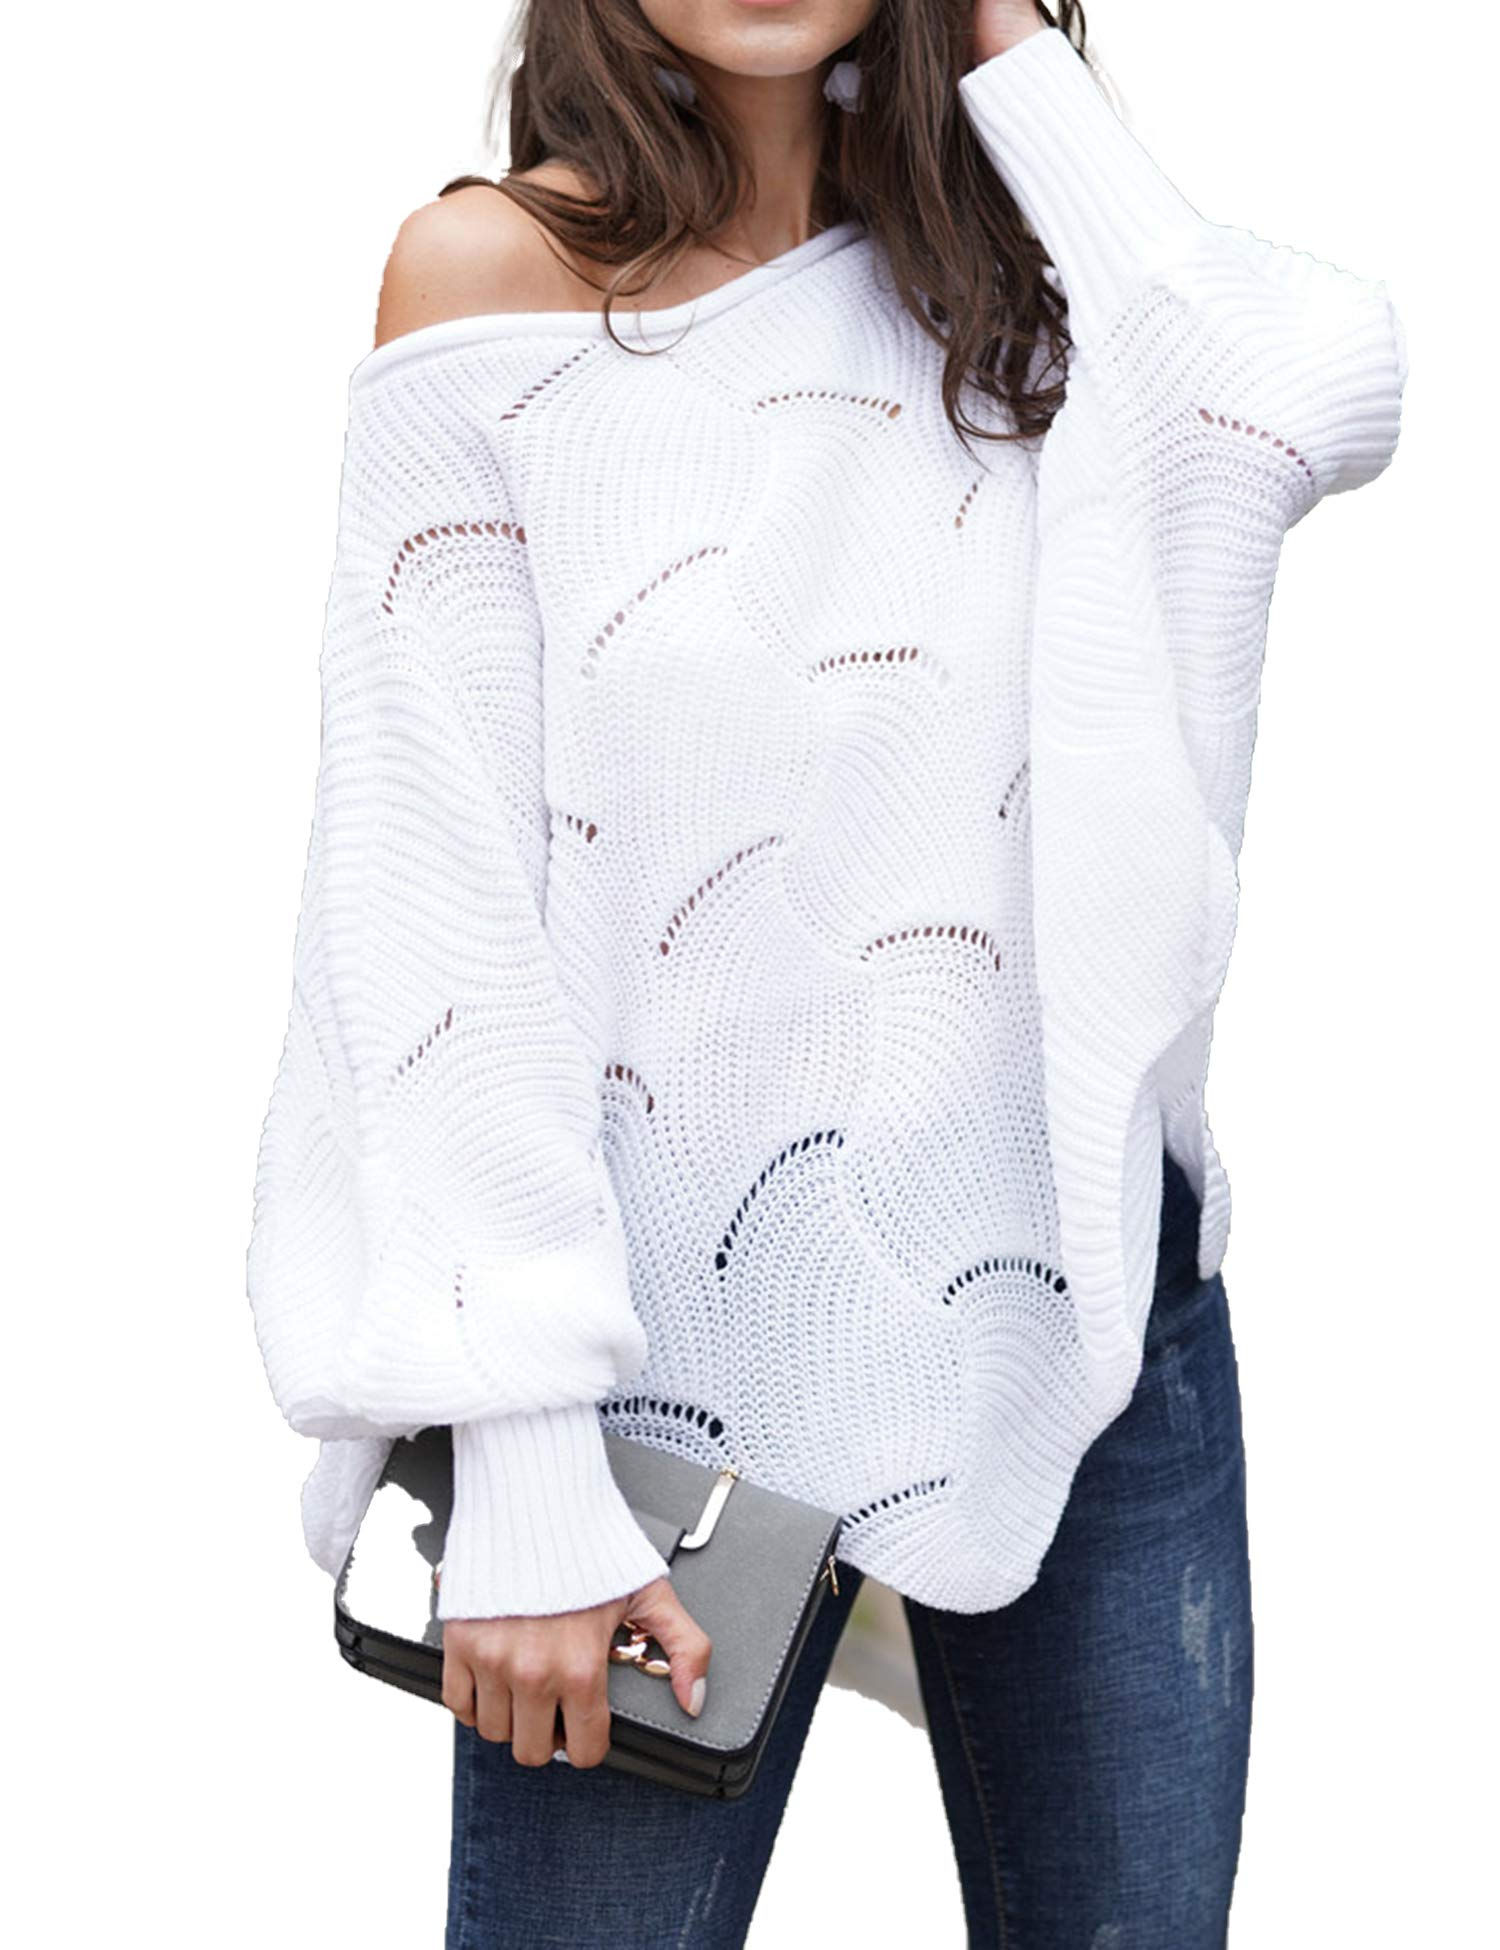 Relipop Women's Pullover Batwing Sleeve Loose Hollow Knit Sweaters White by Relipop